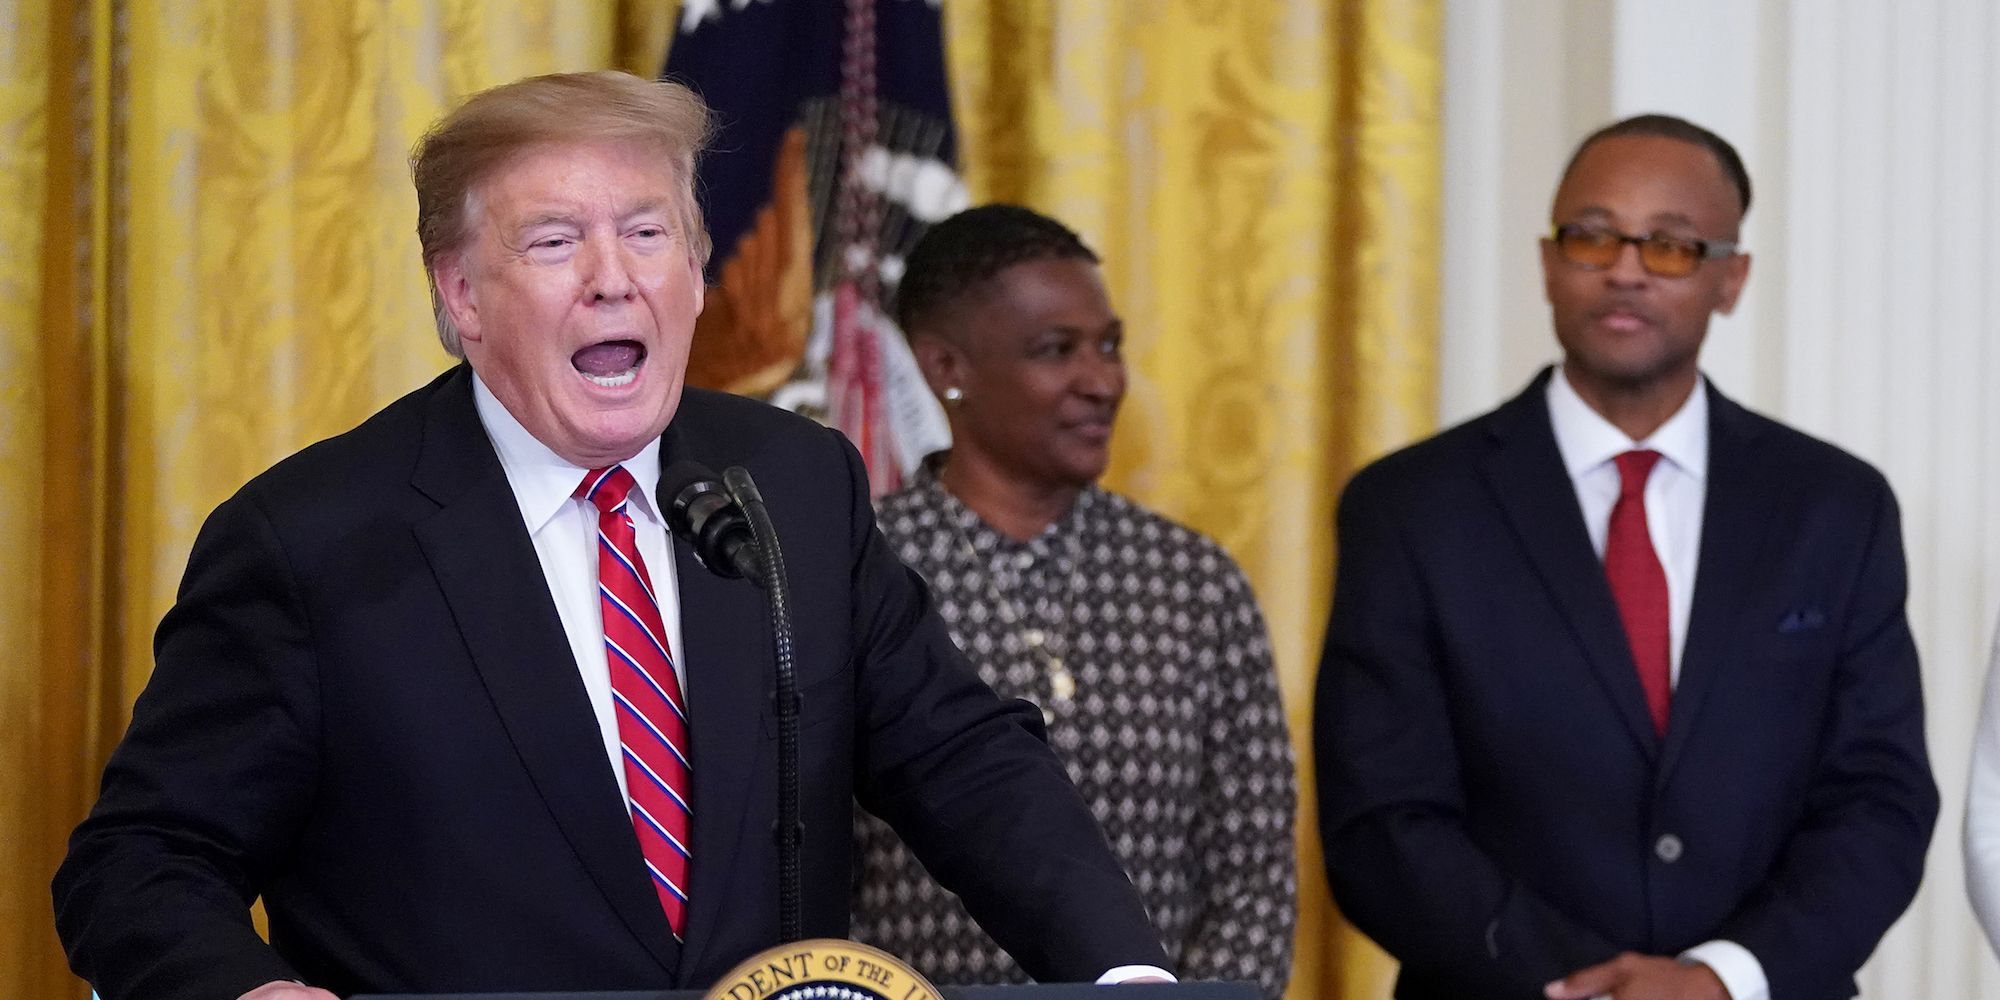 President Donald Trump Participates In Prison Reform Summit And First Step Act Celebration At The White House